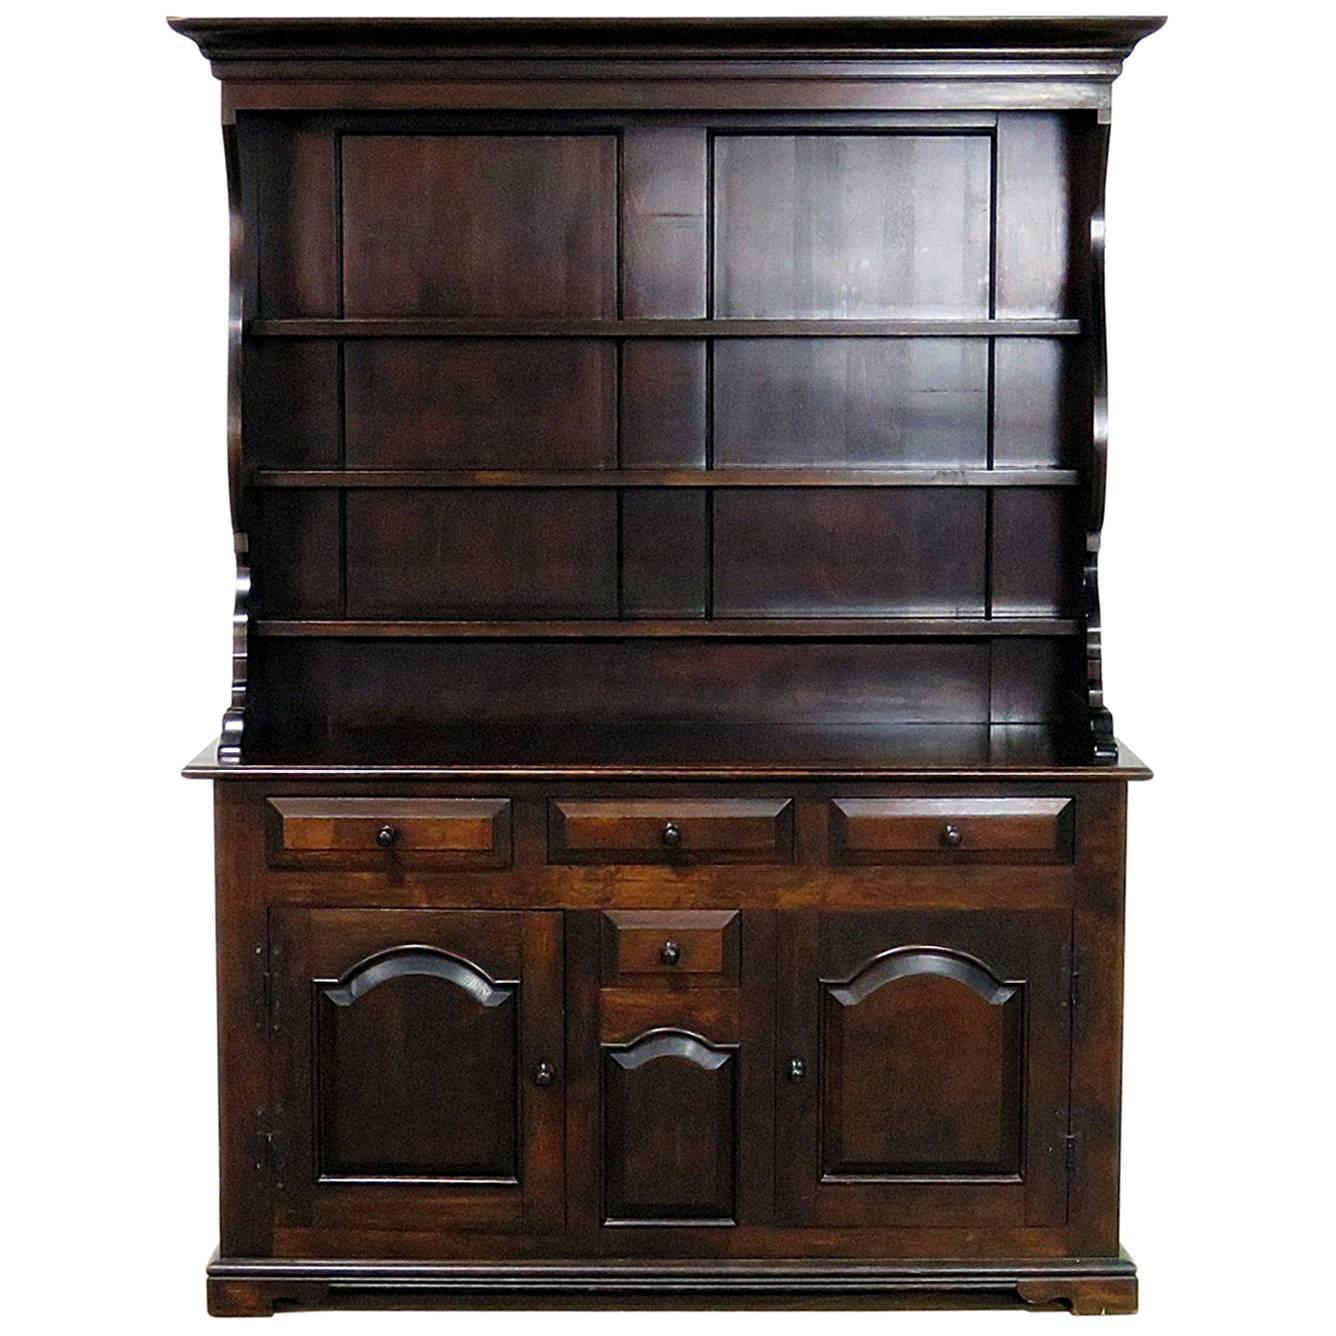 Awesome Wallace Nutting Hutch For Sale